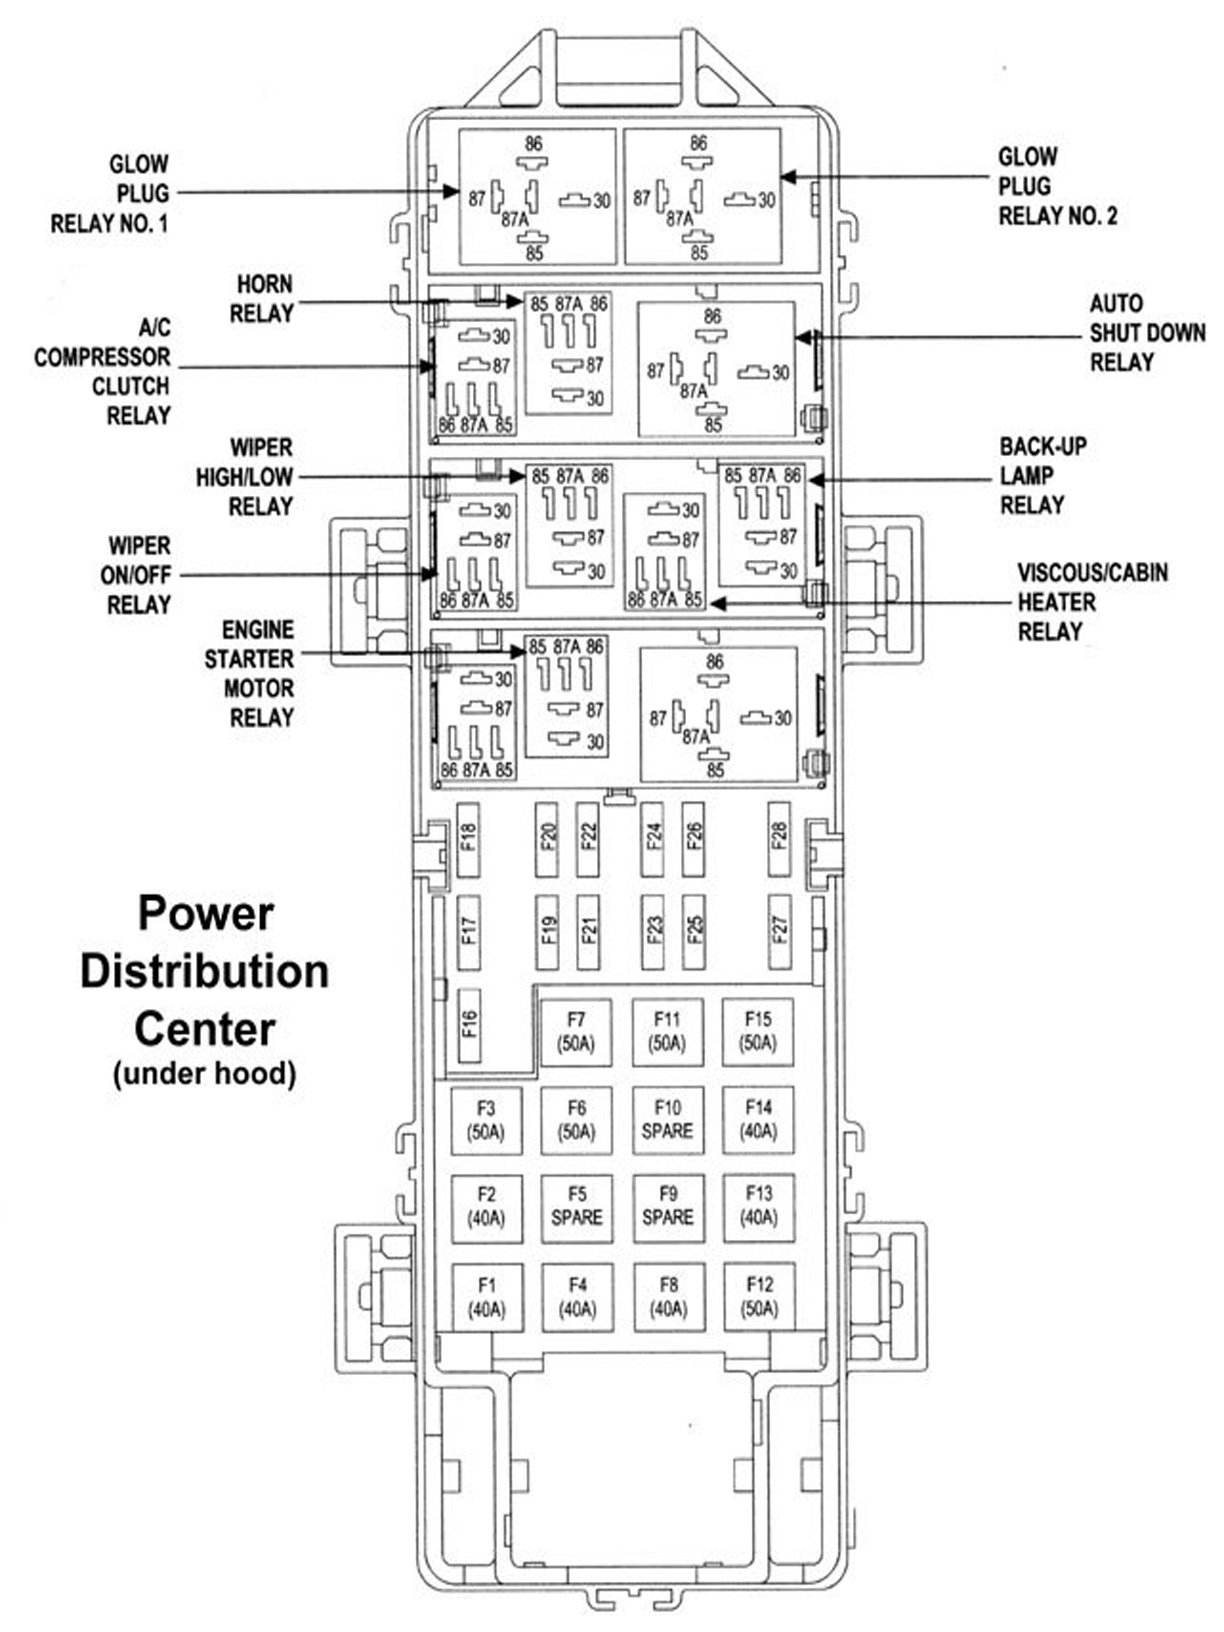 92 cherokee fog light wiring diagram